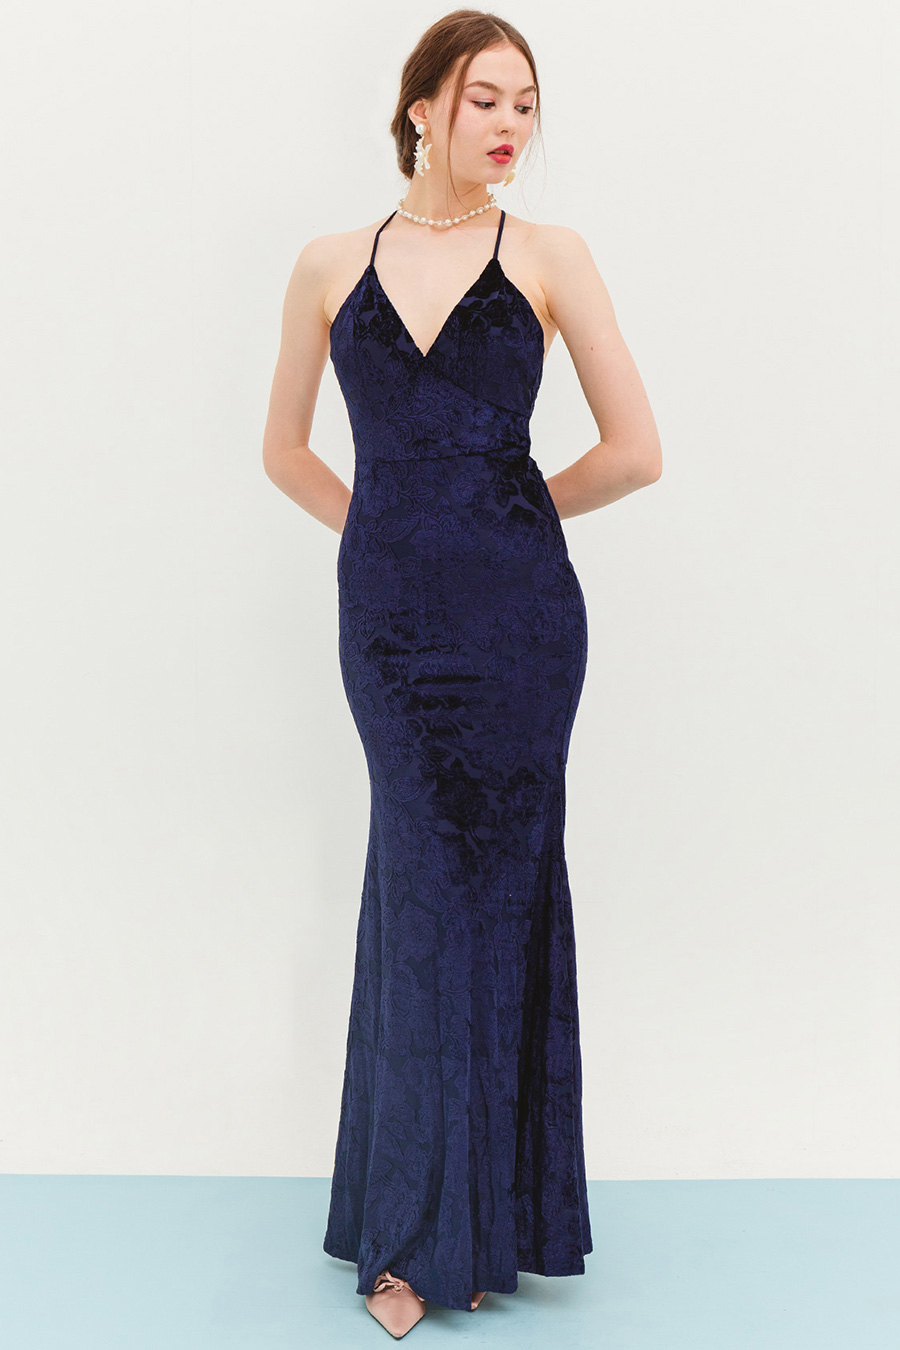 YSSABELLA DRESS - MIDNIGHT